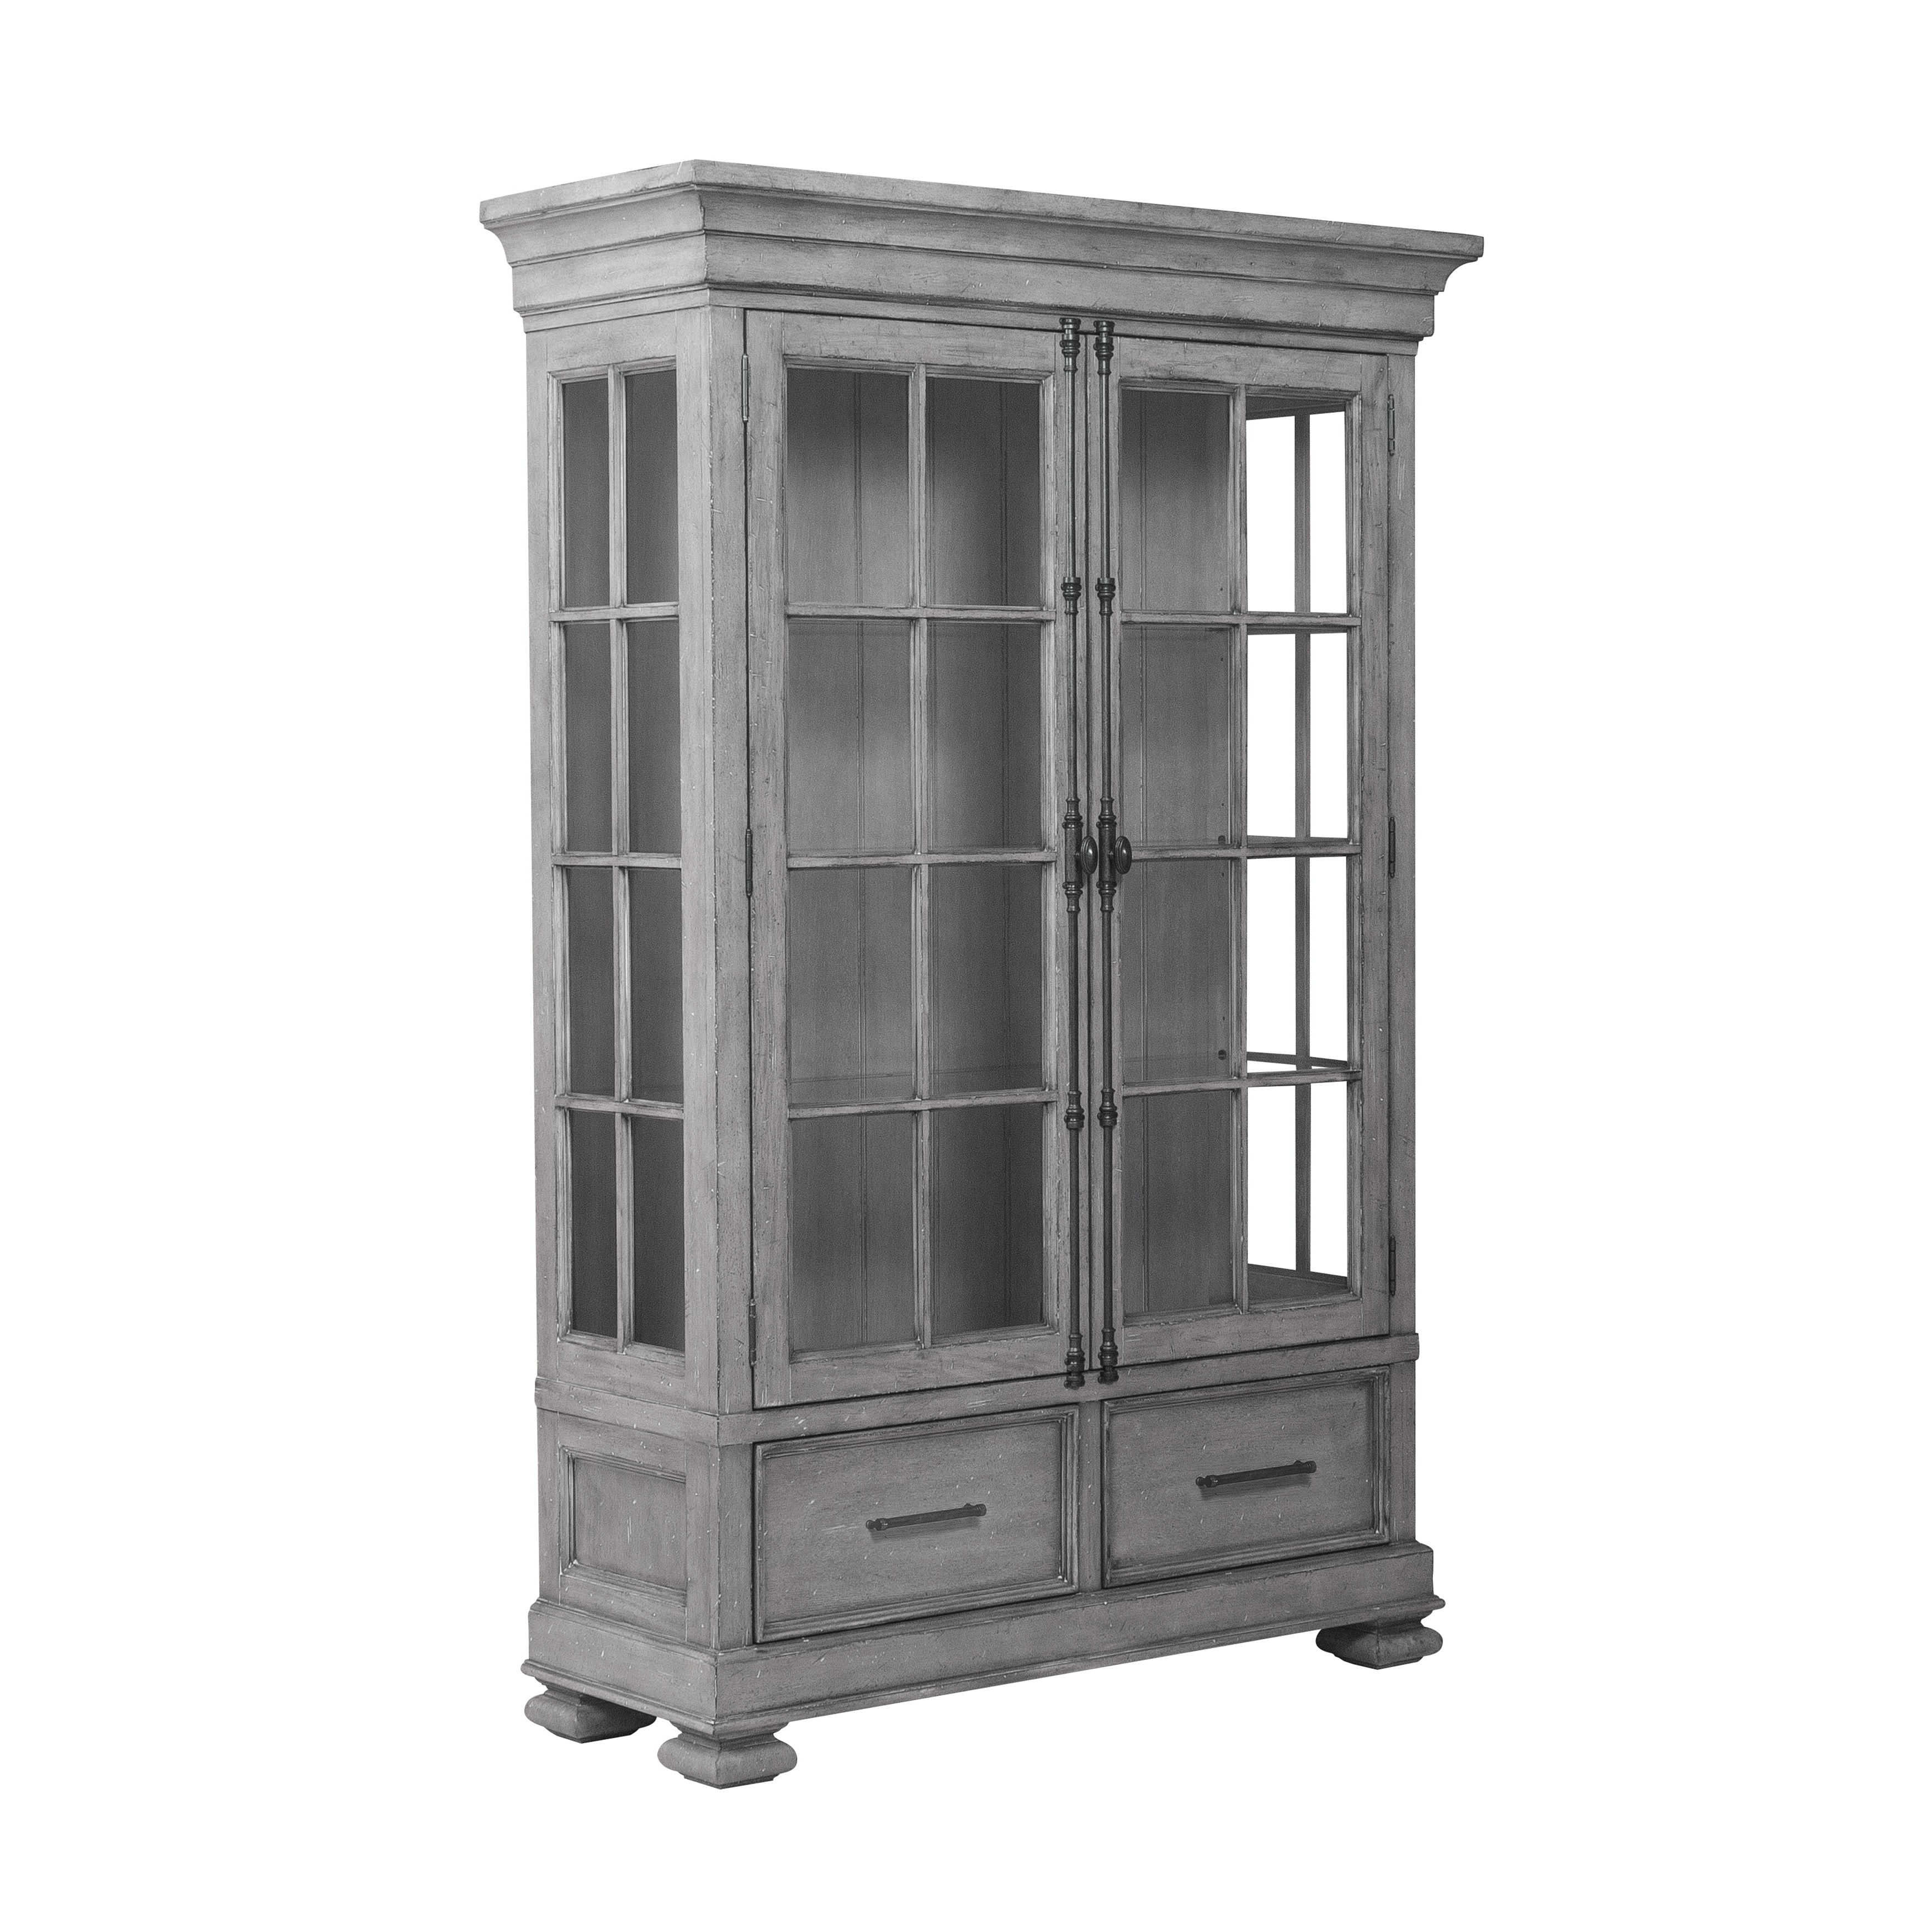 Awesome Prospect Hill China Cabinet ST:490148